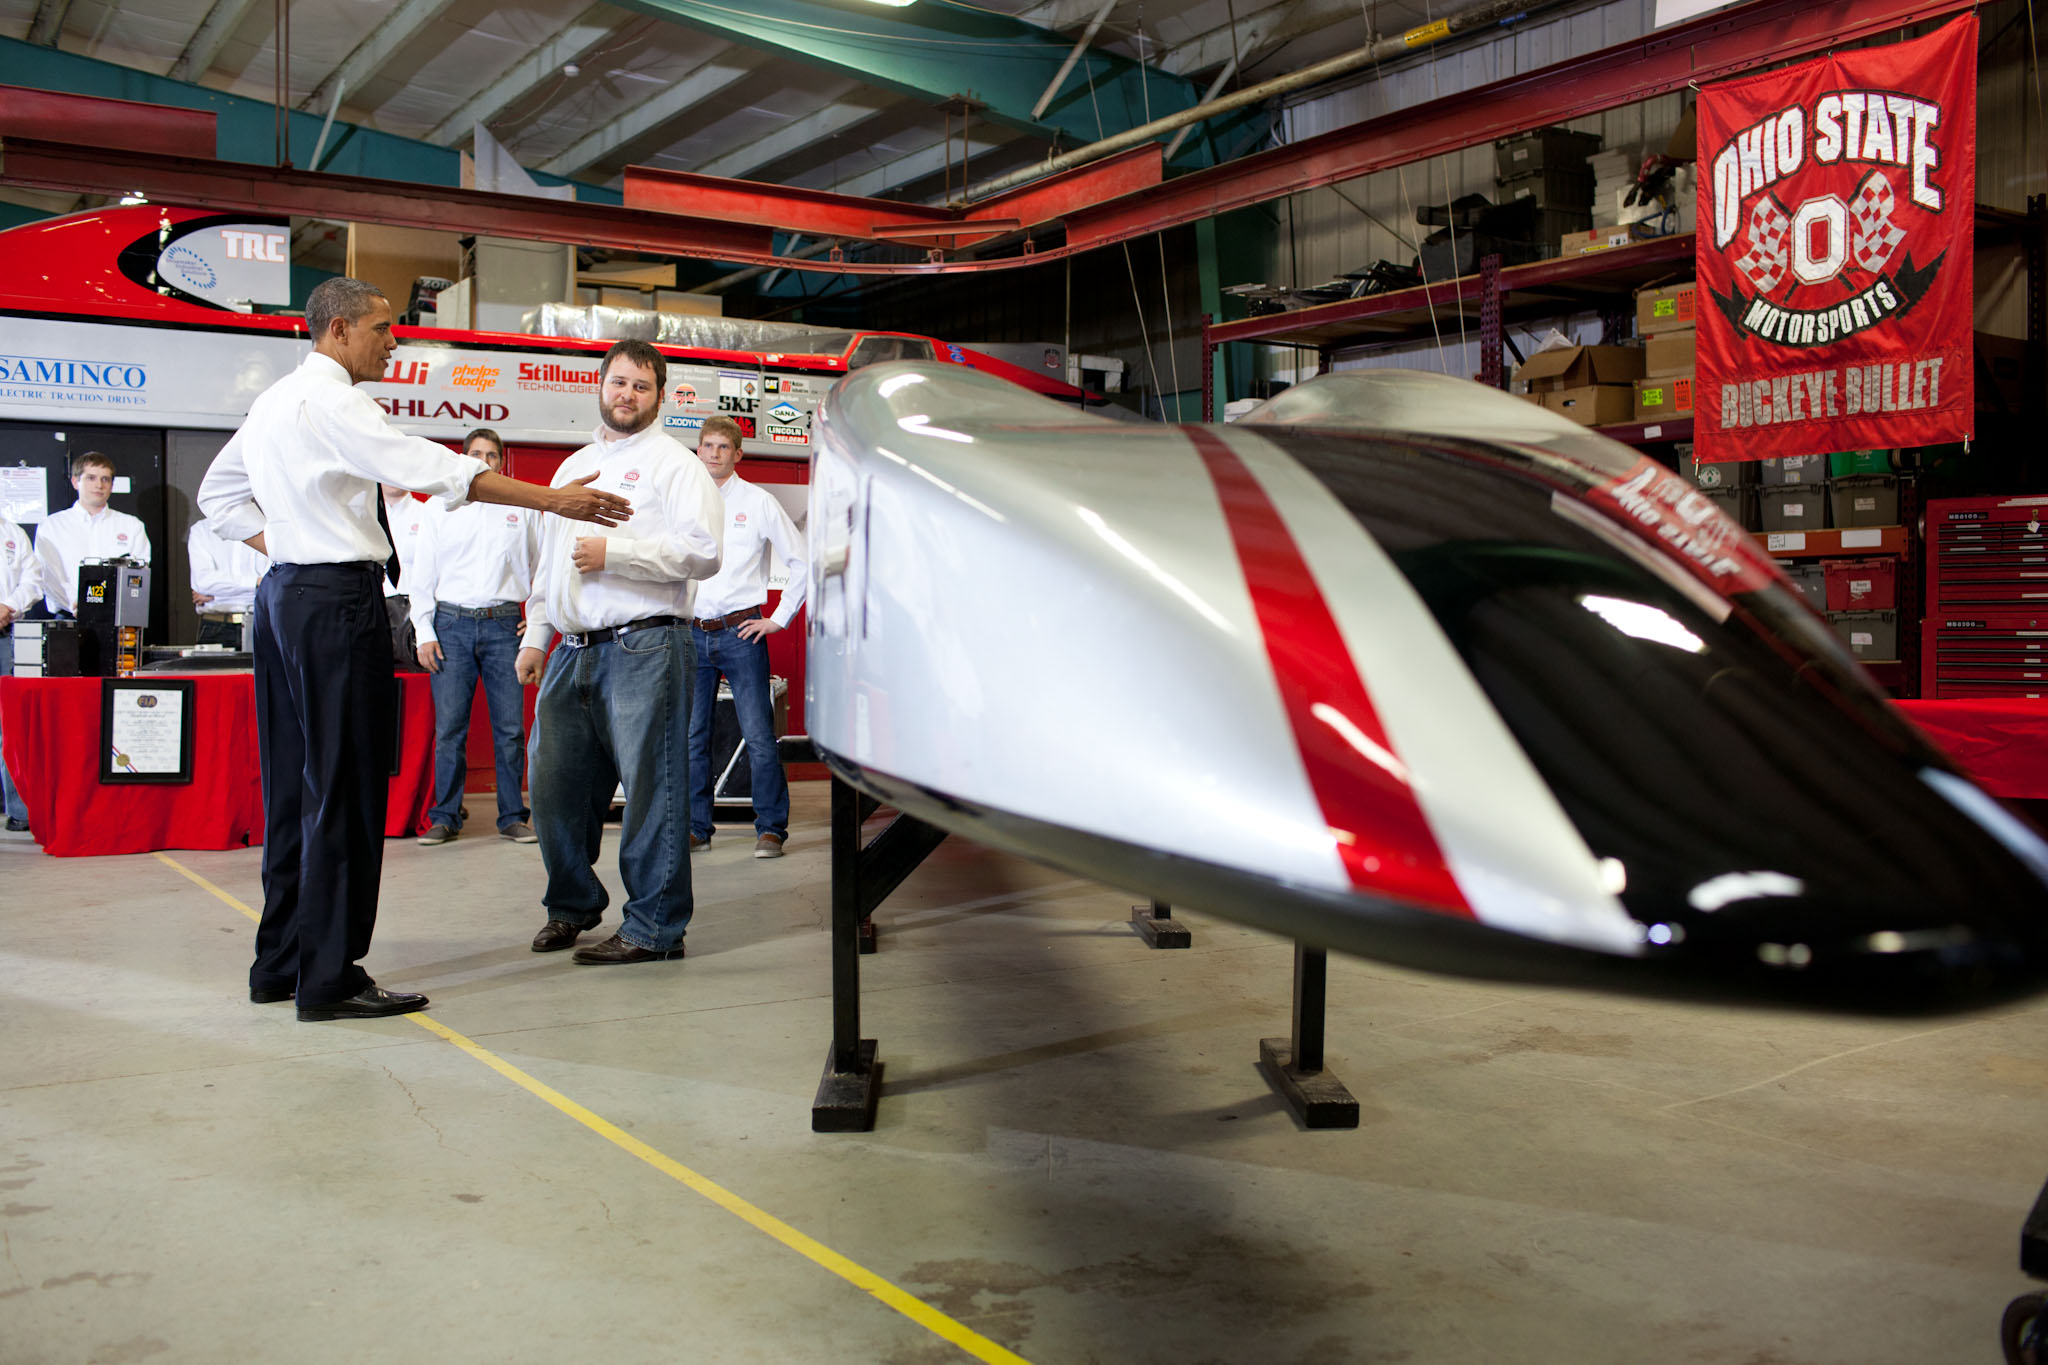 President Barack Obama looks at the Buckeye Bullet (March 22, 2012)